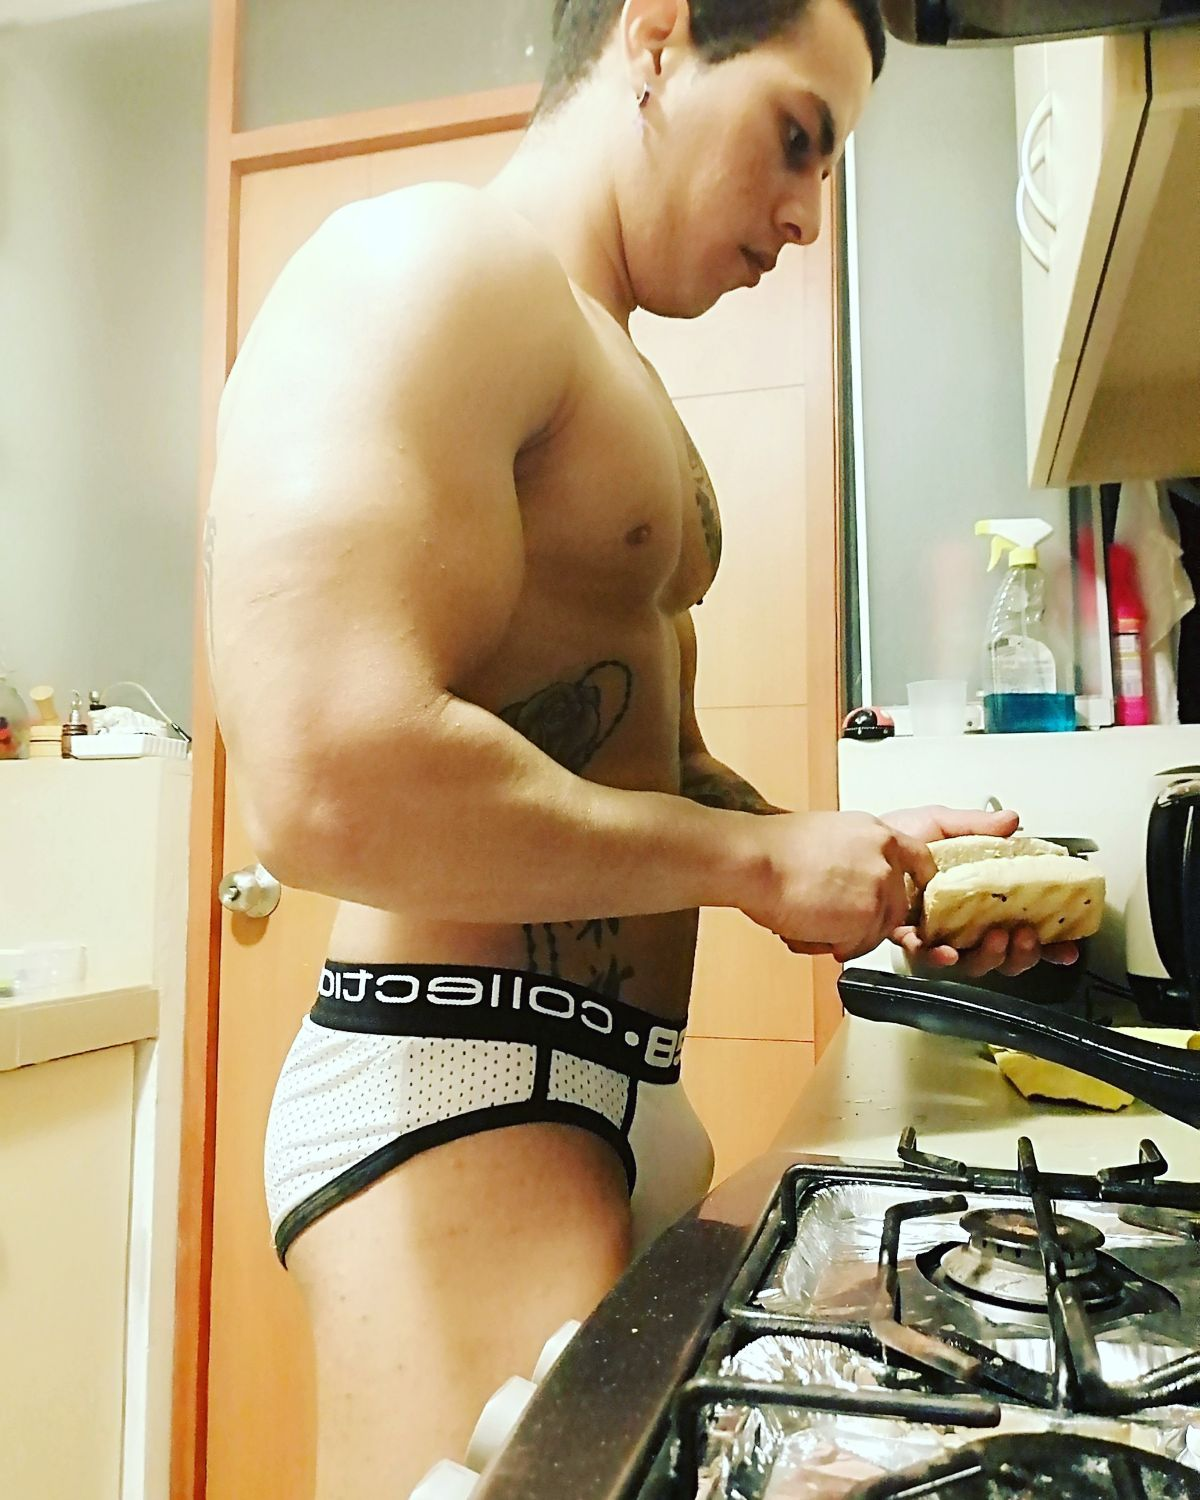 Free Domenico10 onlyfans onlyfans leaked